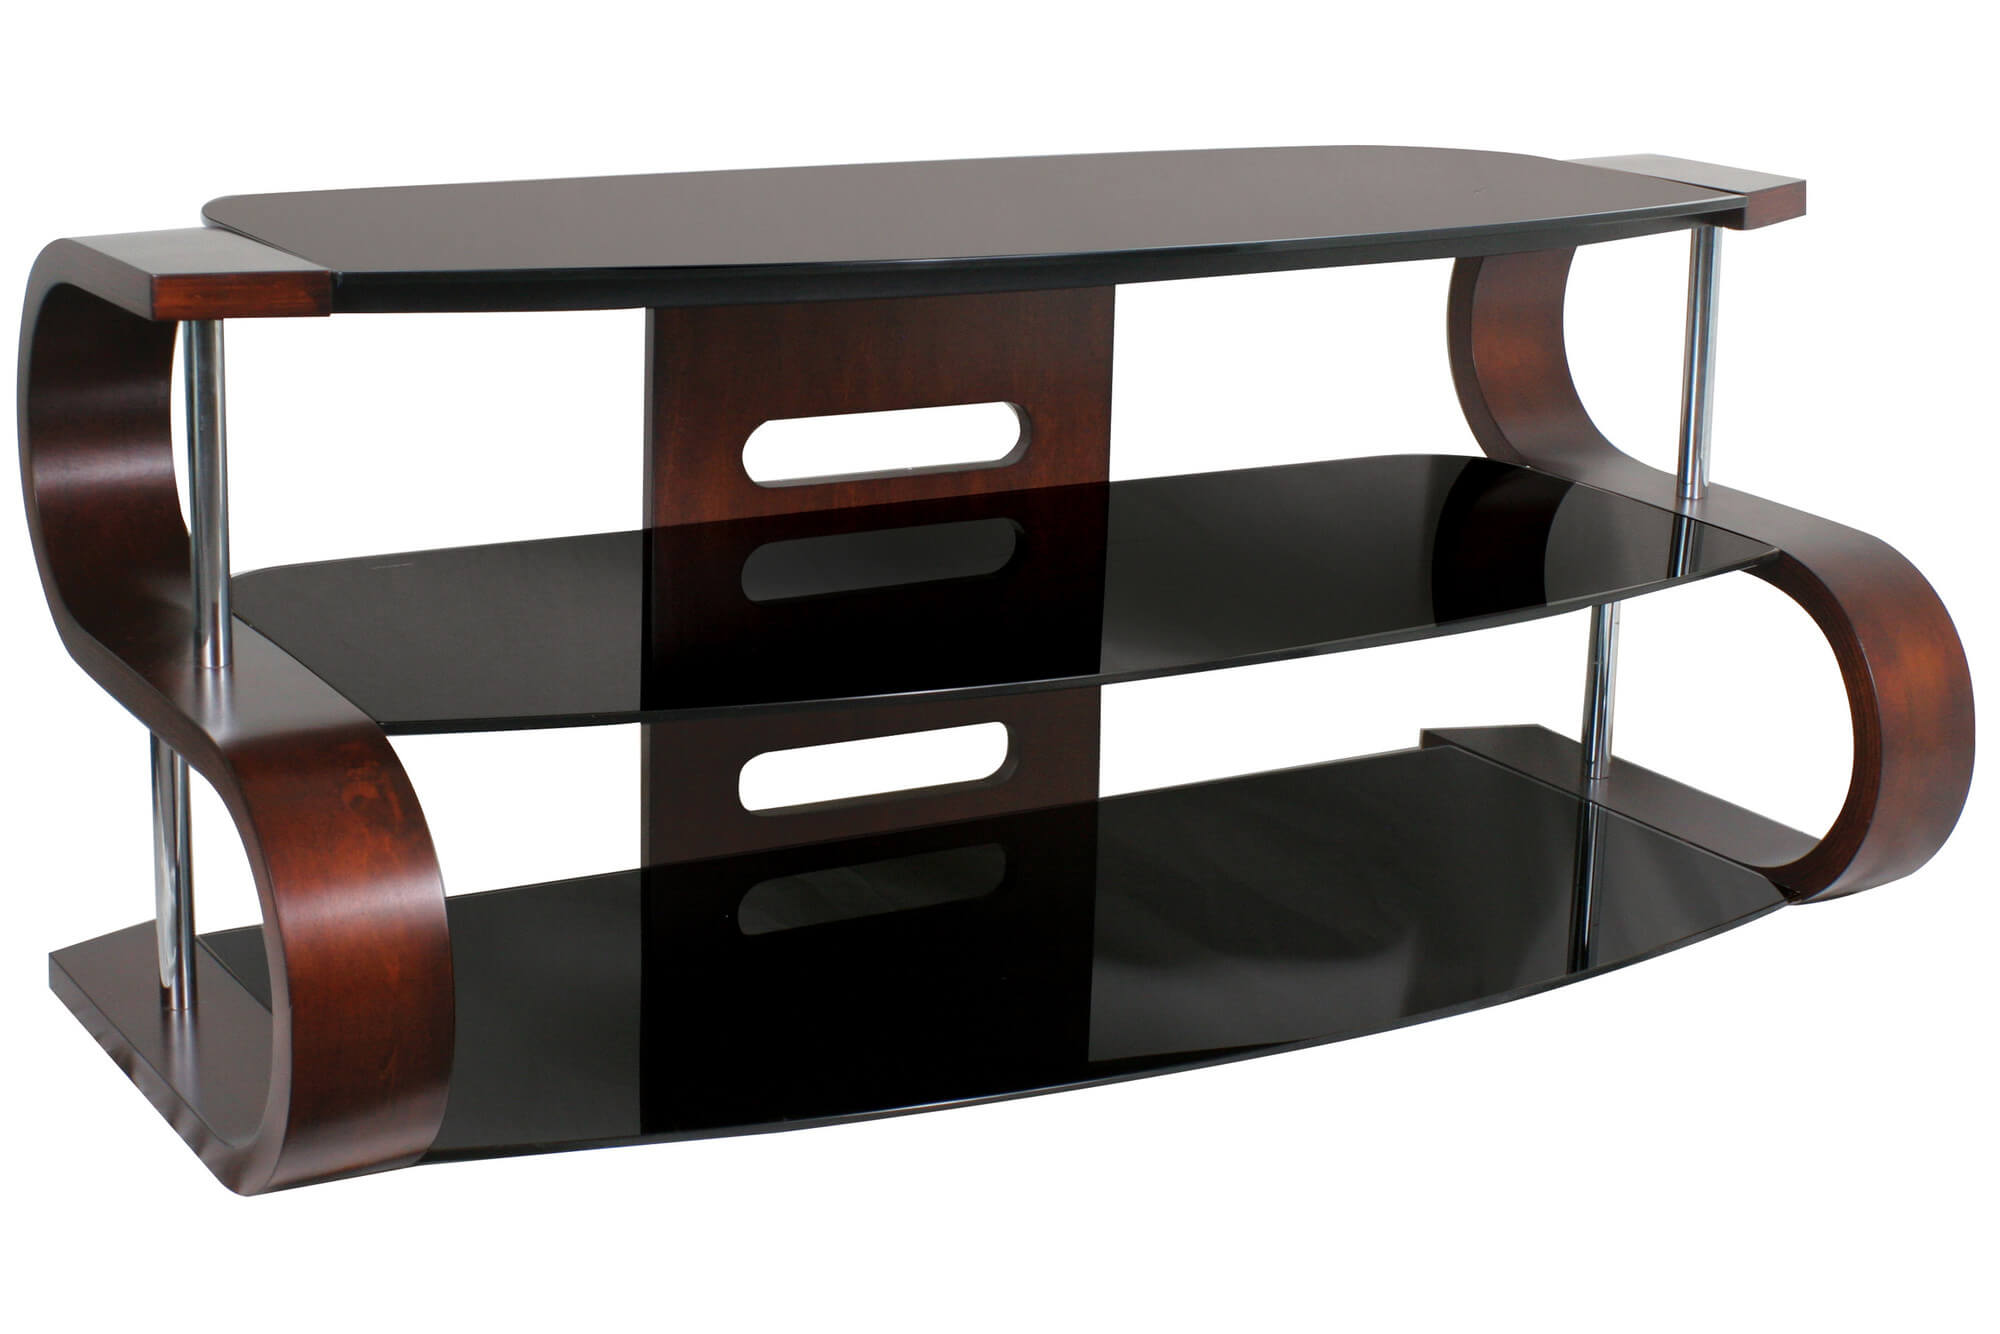 Modern TV stand design with shelves.